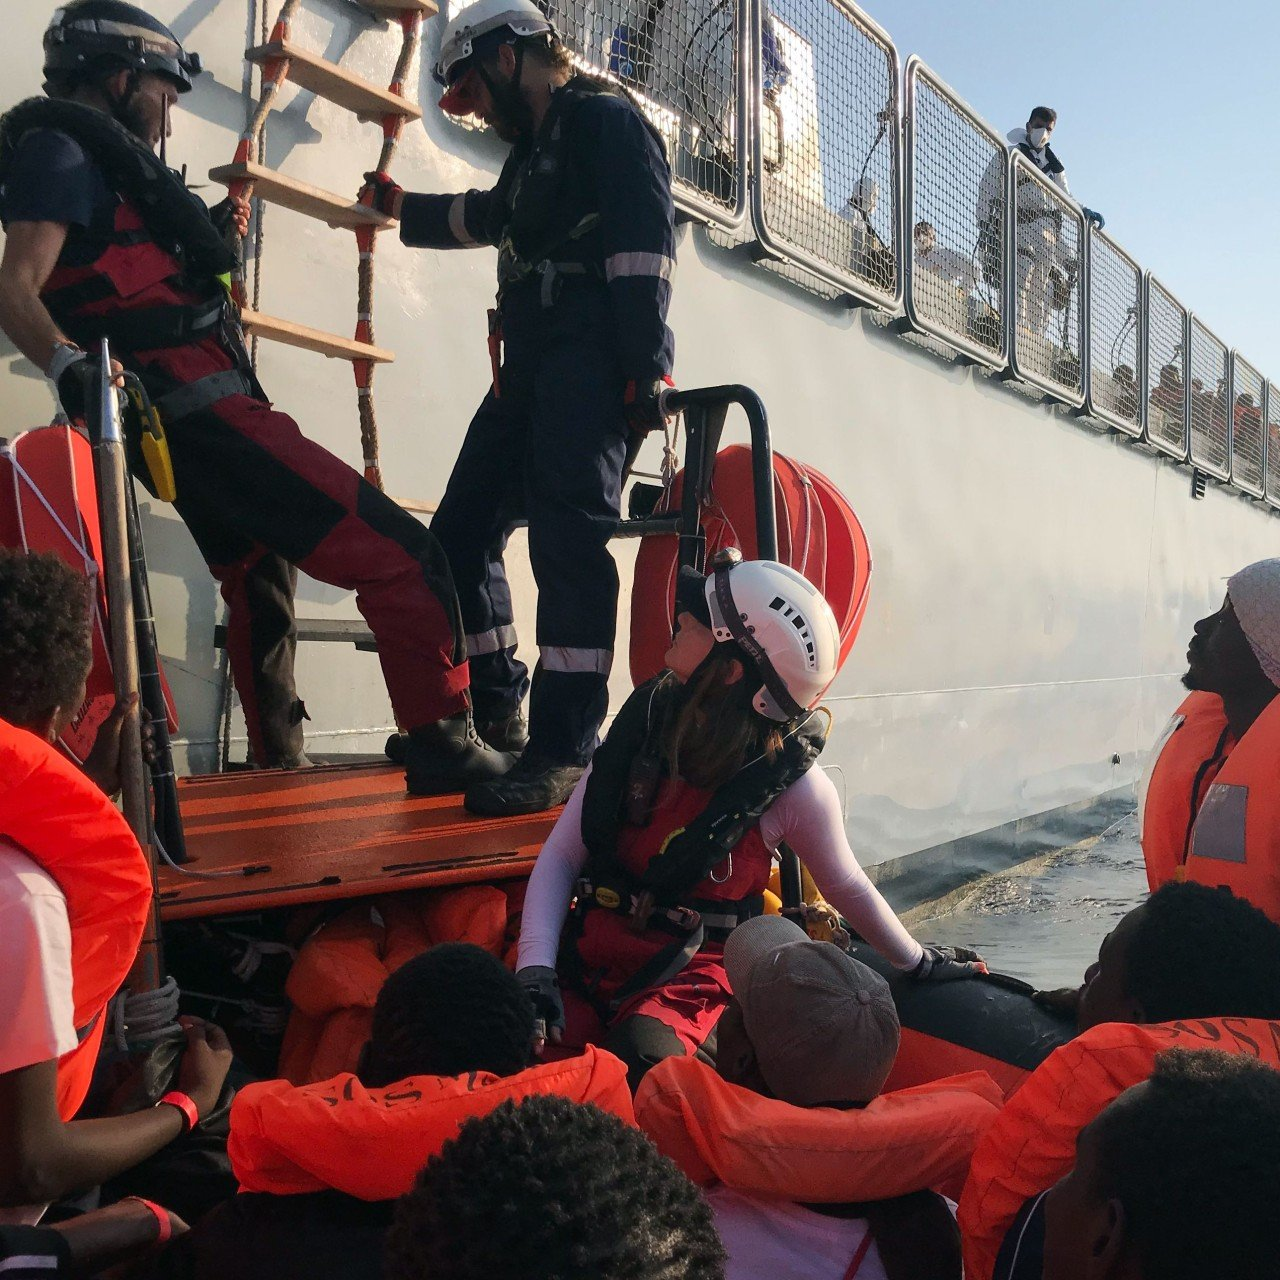 150 feared dead in the 'worst Mediterranean tragedy of the